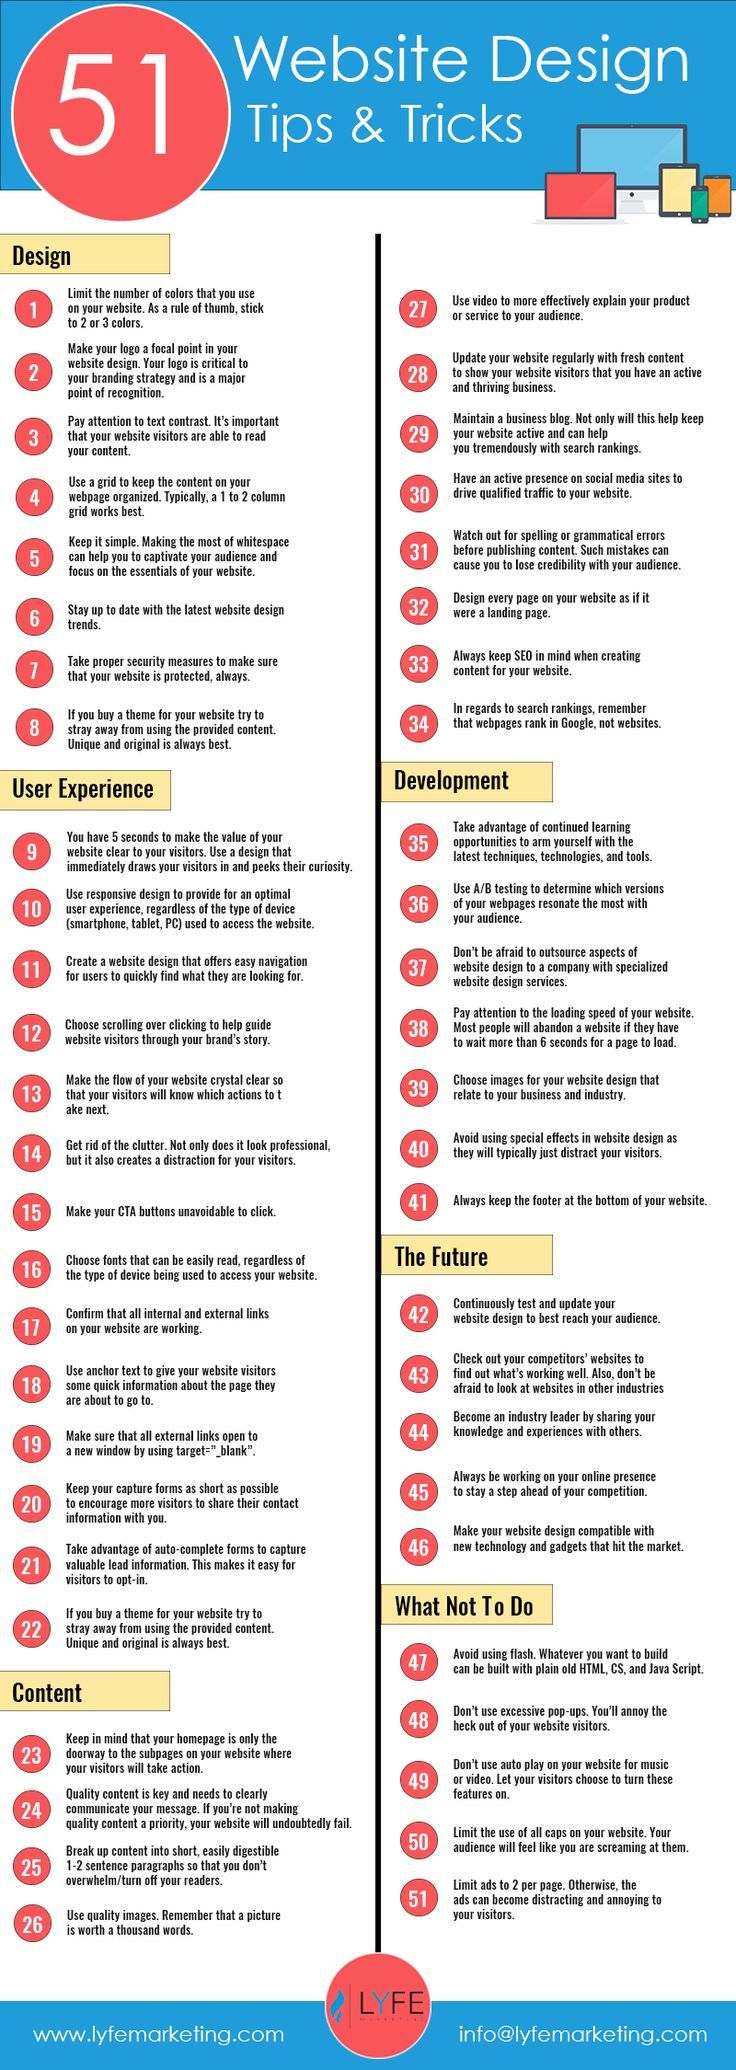 Build websites or looking to have one built? Remember these 51 website design…